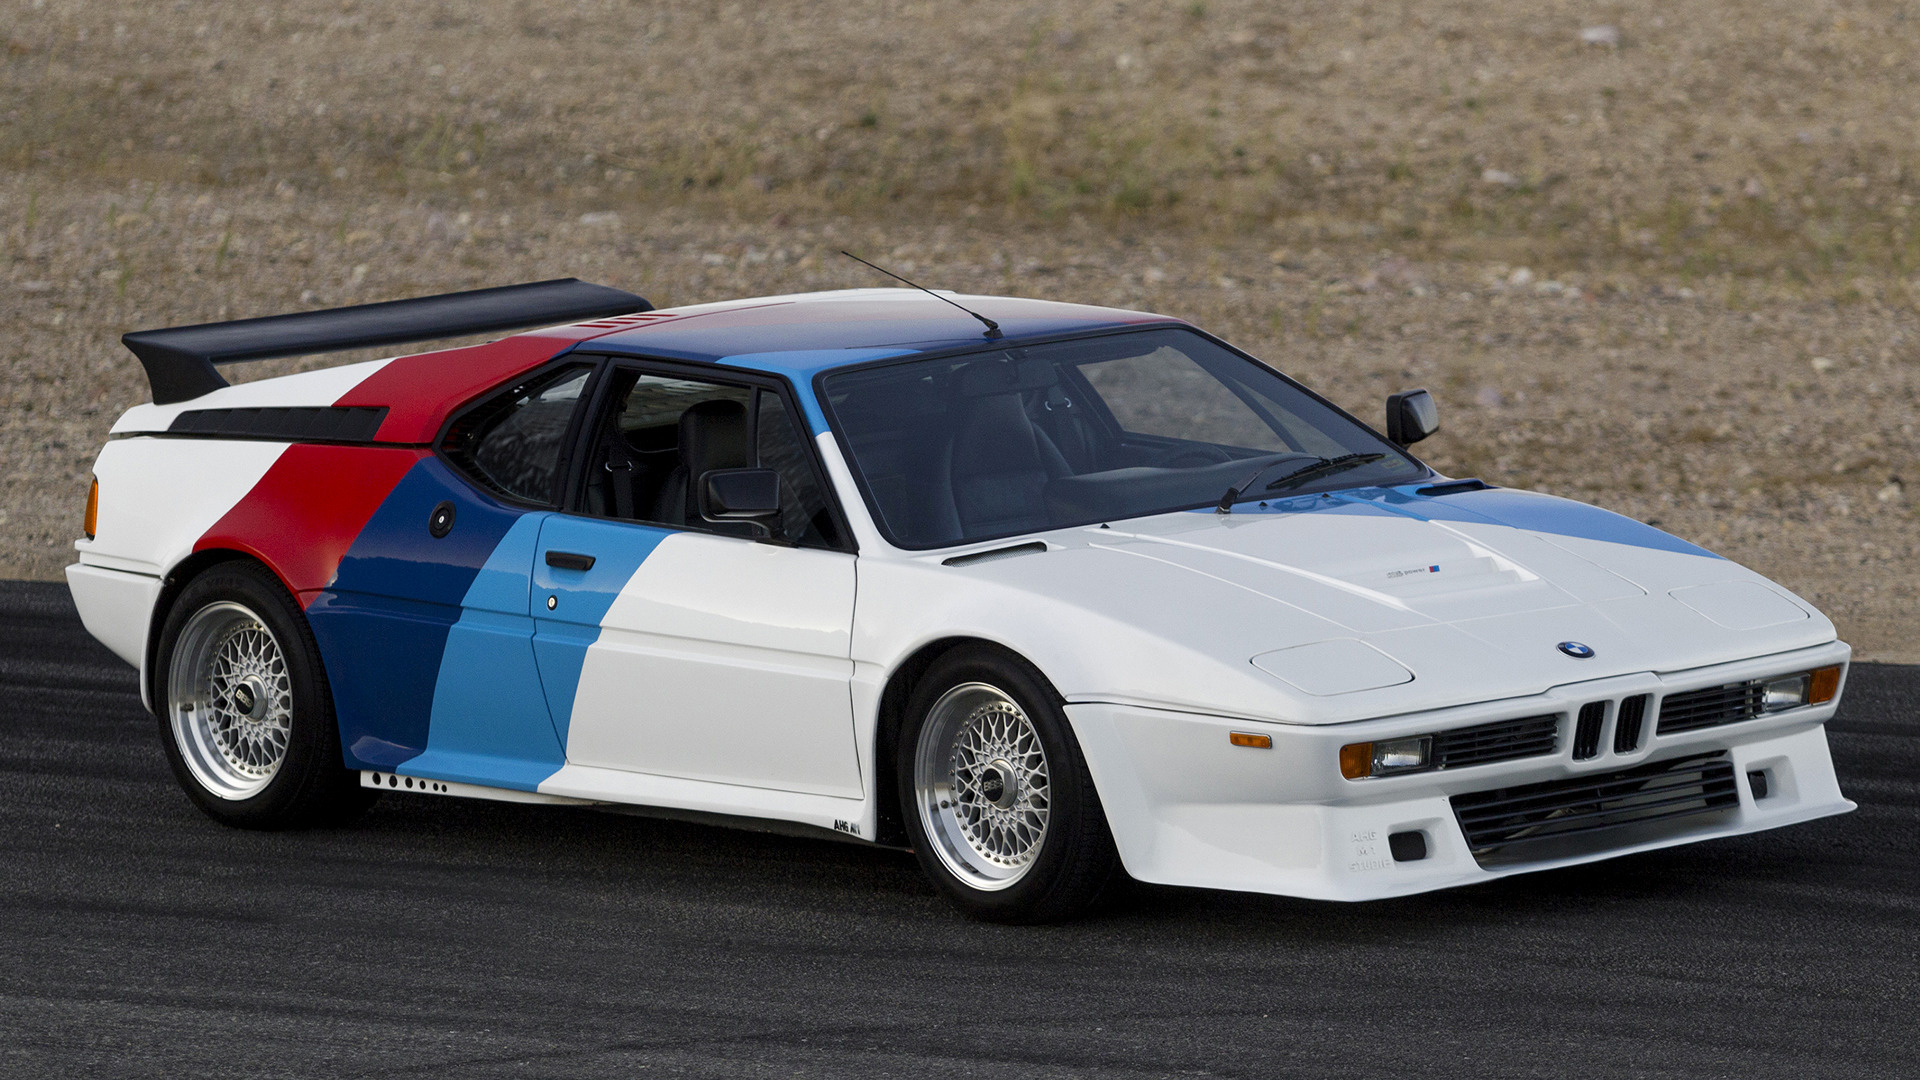 1979 bmw m1 procar by ahg wallpapers and hd images car. Black Bedroom Furniture Sets. Home Design Ideas